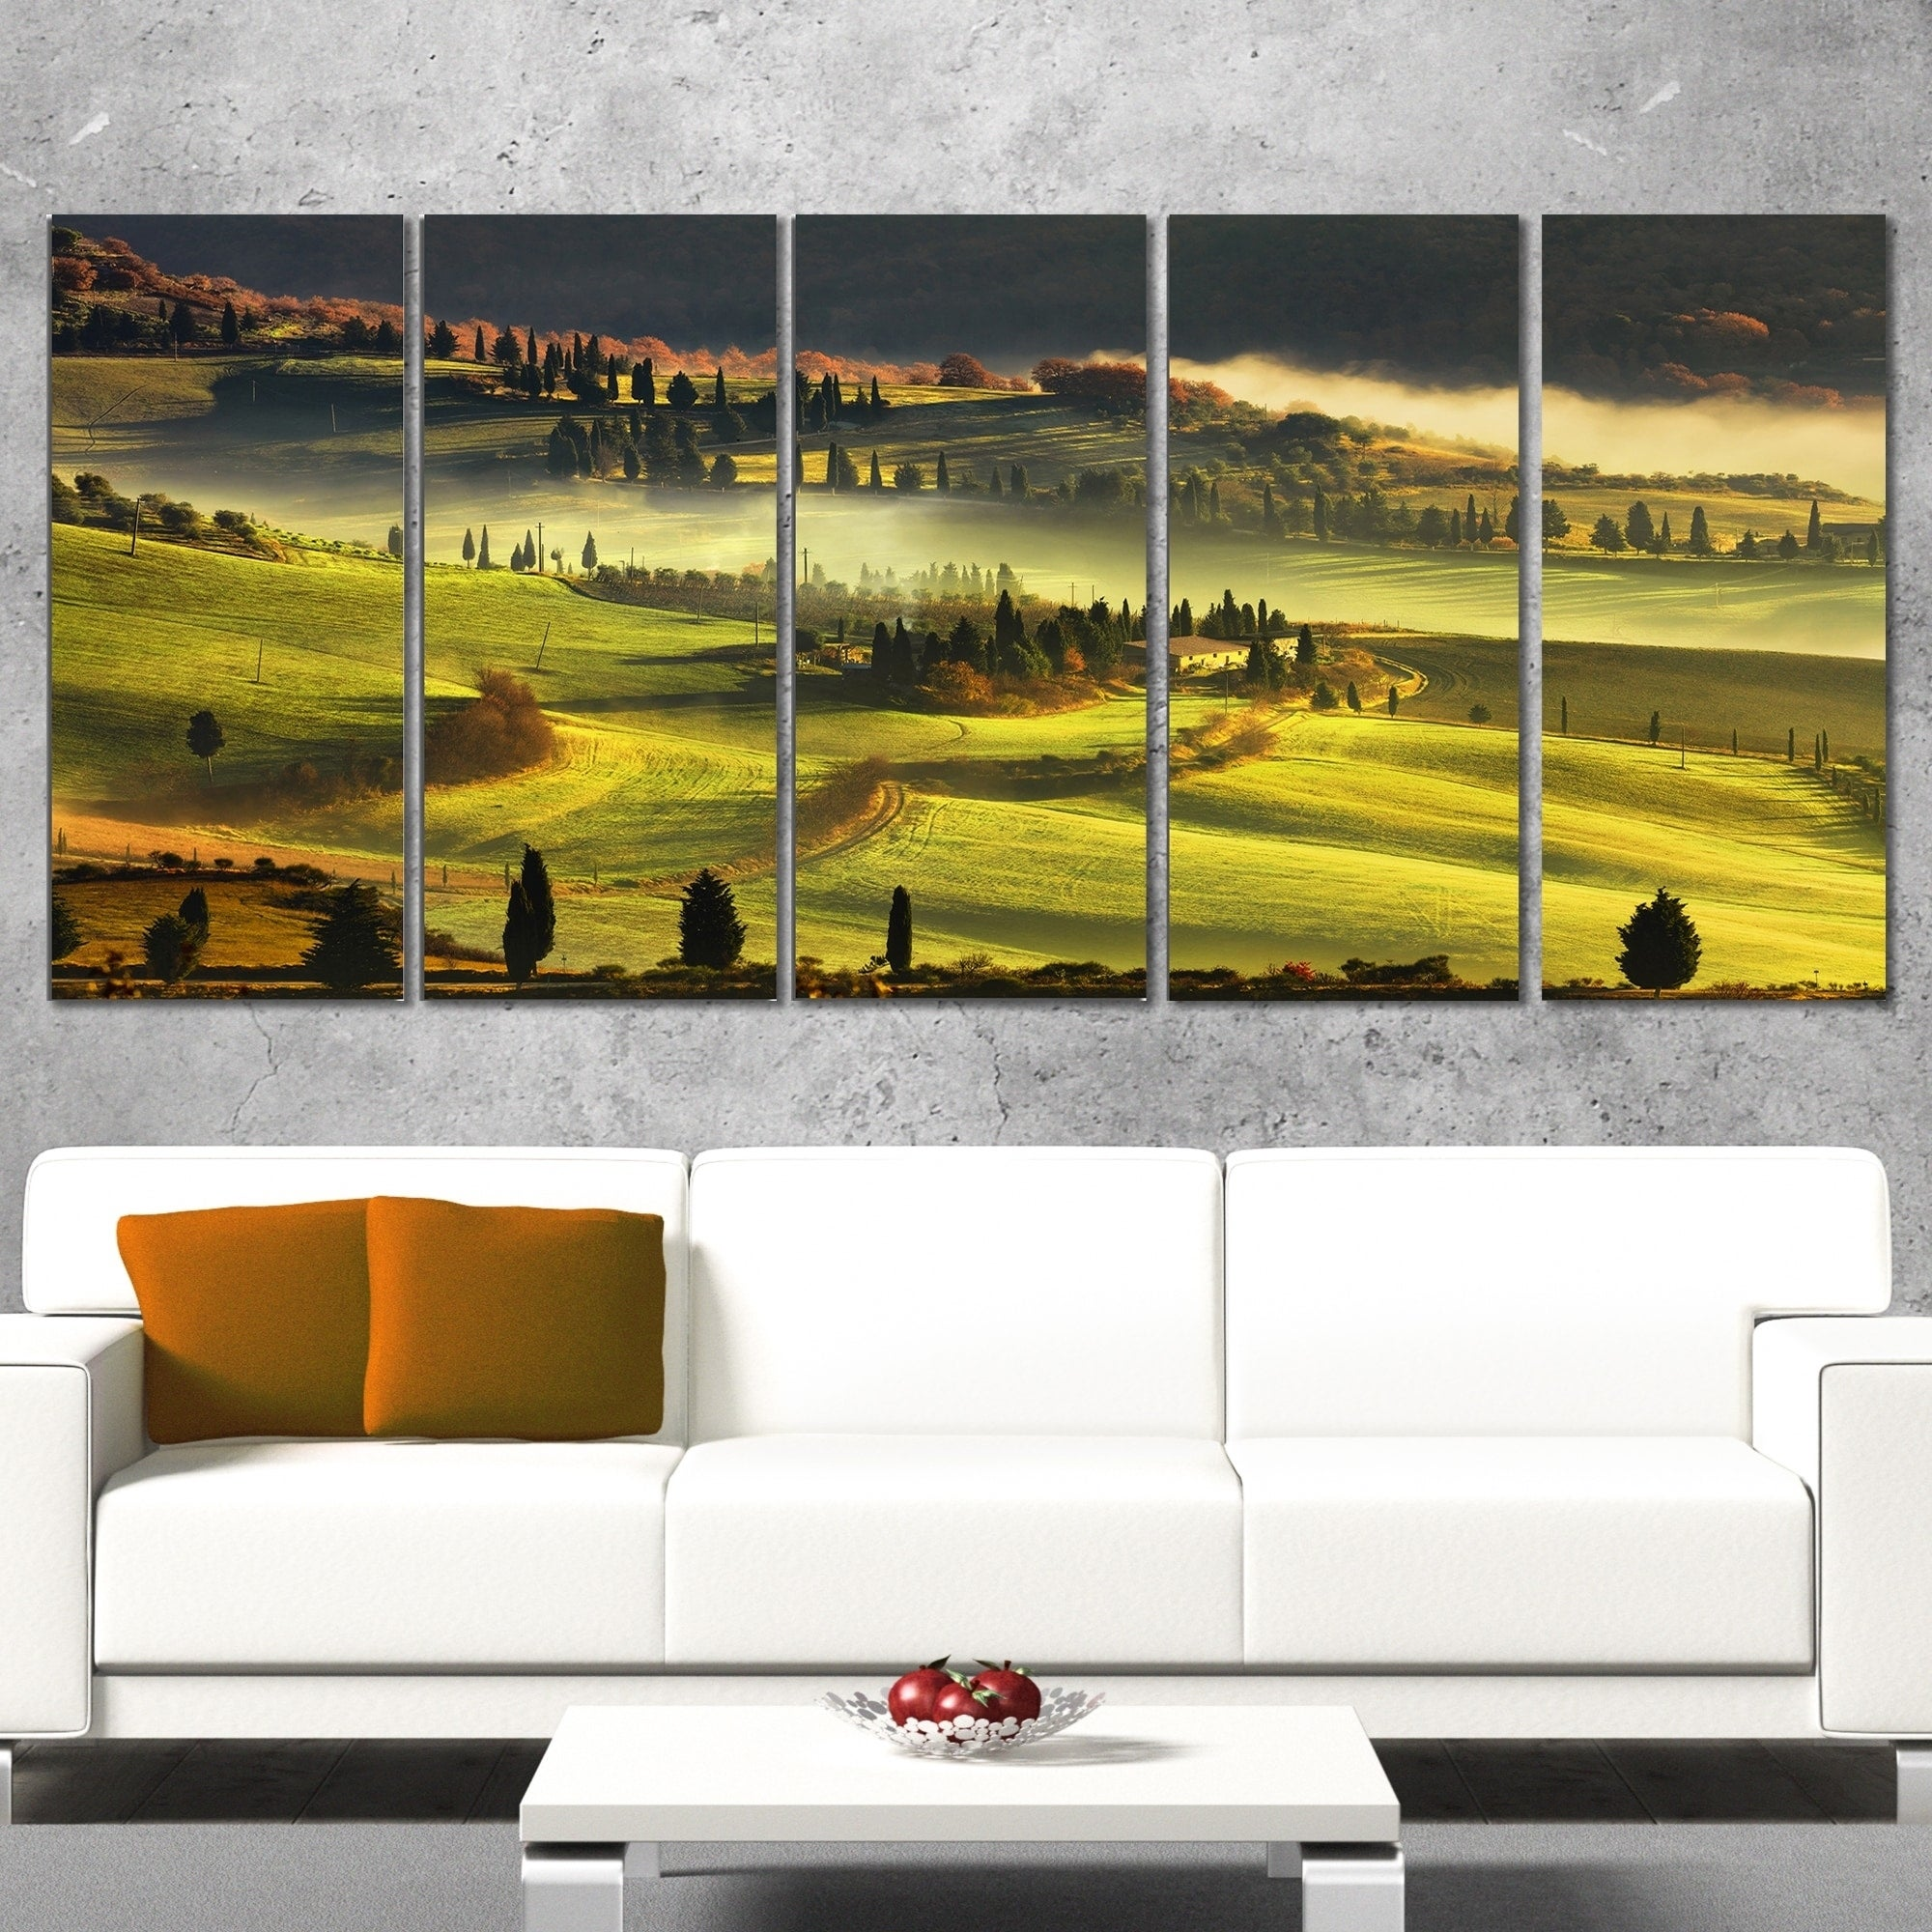 Charming Vineyard Wall Decor Pictures Inspiration - The Wall Art ...